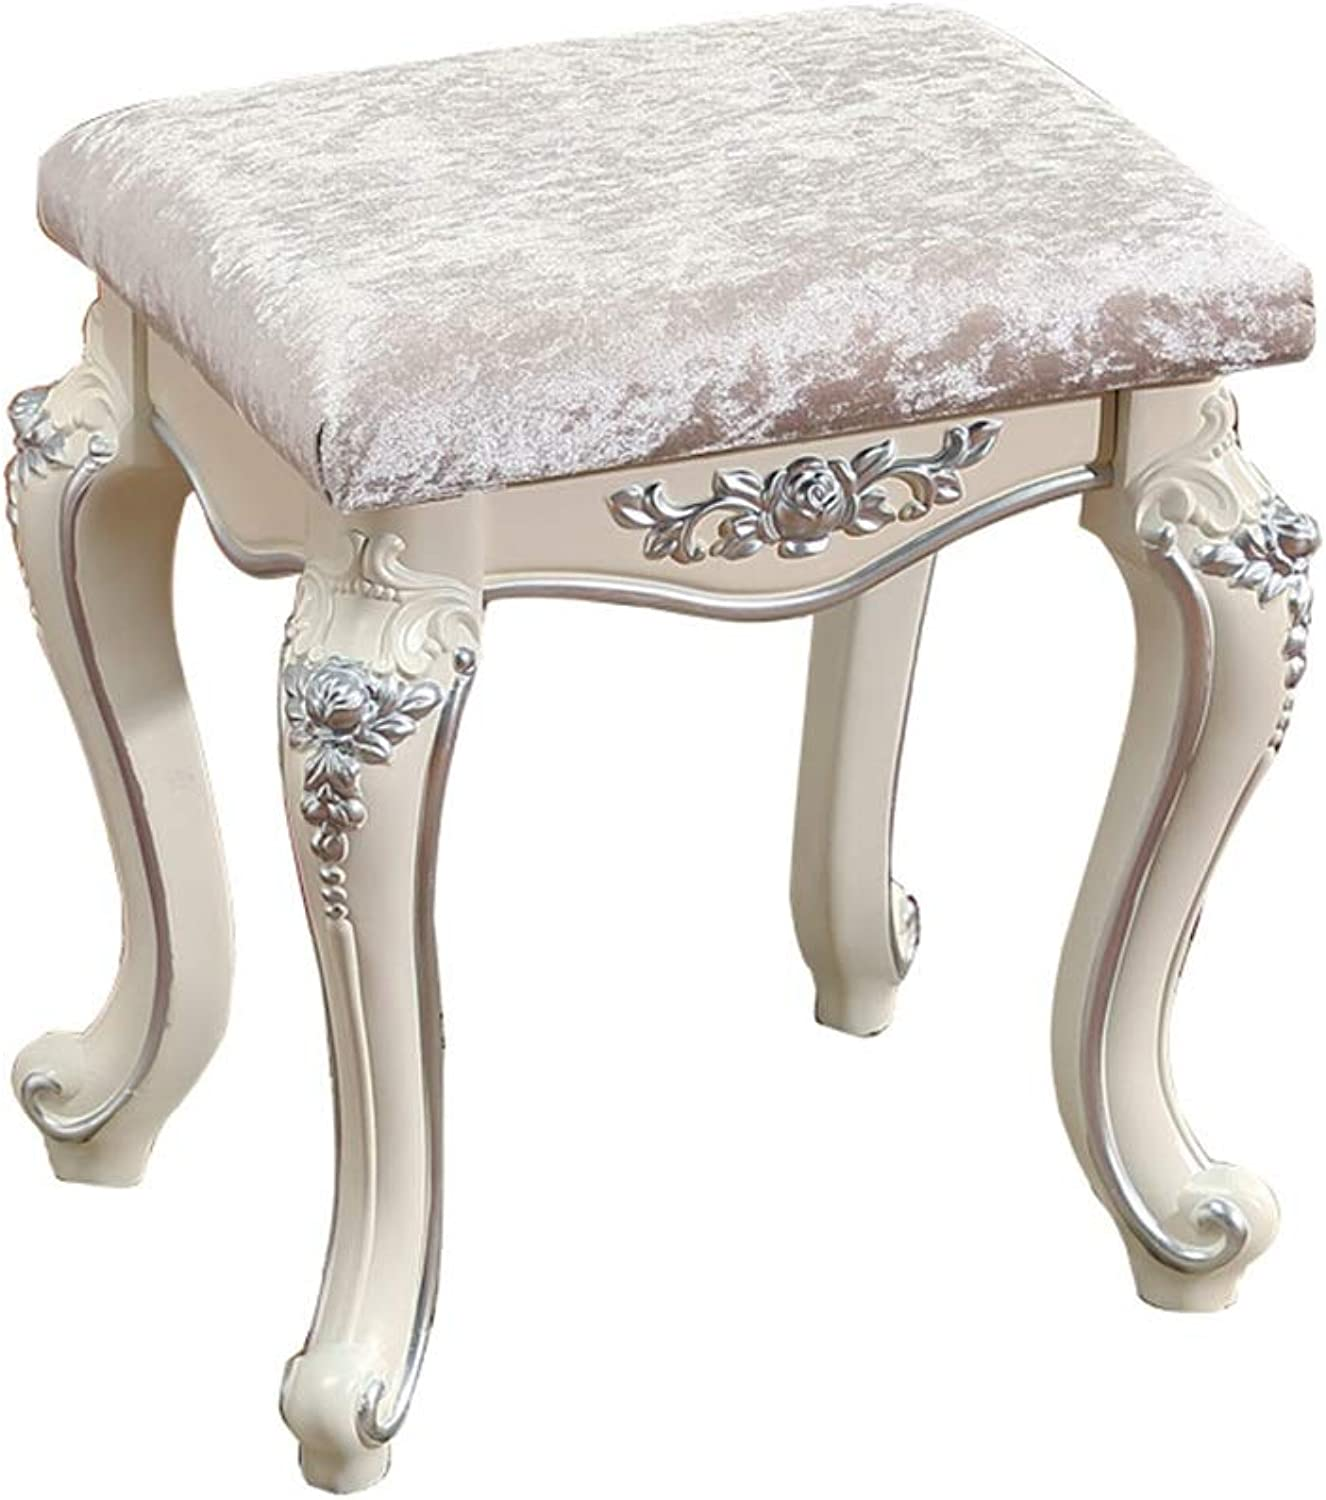 Dressing stools Silk Cotton MDF Frame Resin Comfortable Sofa Stool (color   Silver, Size   41  31  45cm)